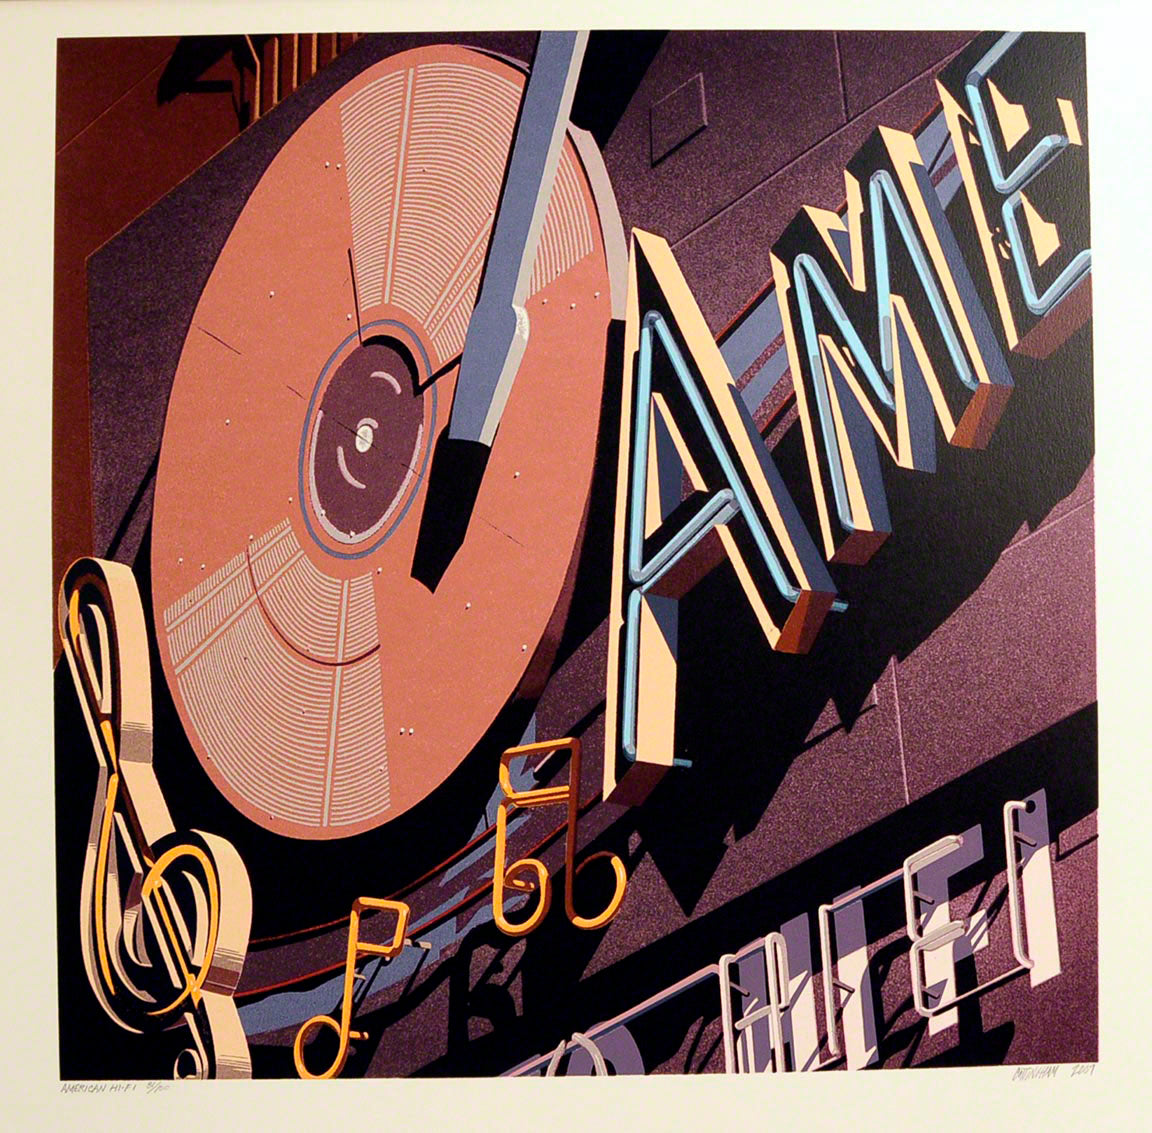 American Signs AME by Robert Cottingham